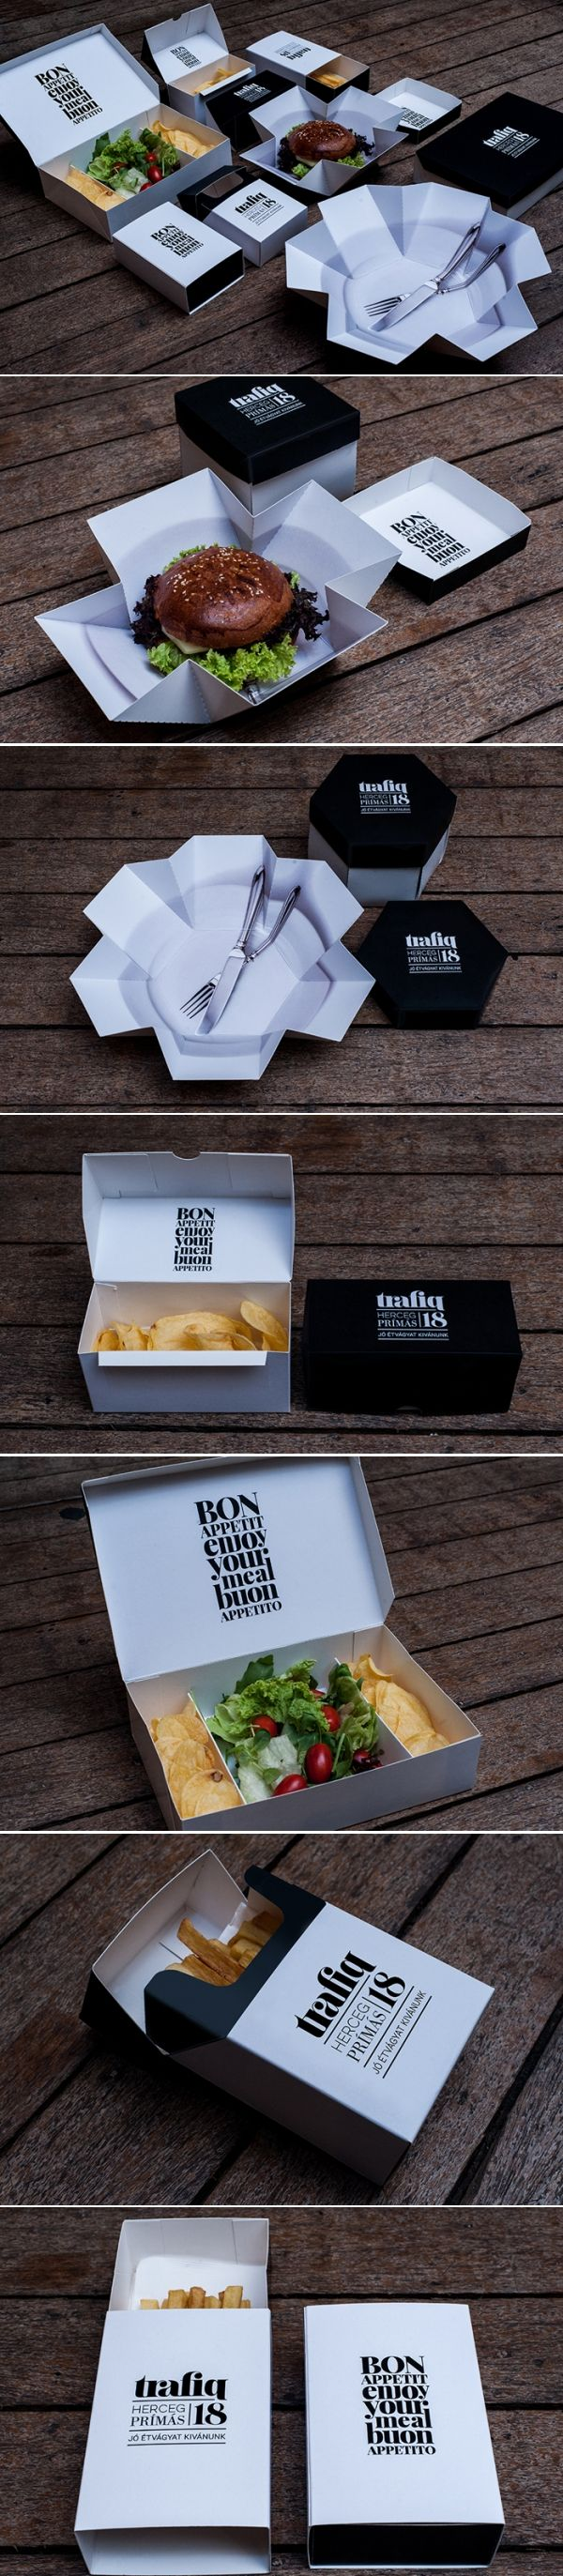 Trafiq Packaging by Kiss Miklos.